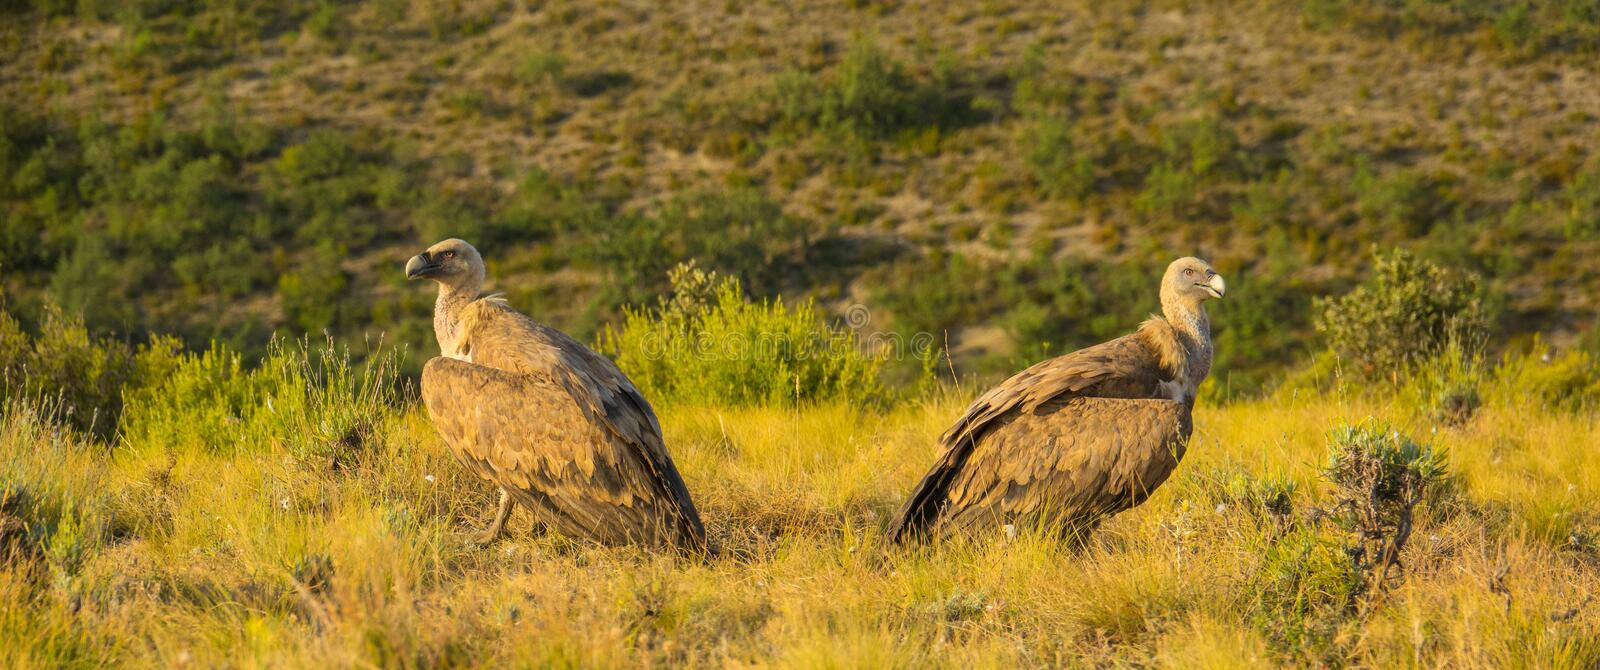 Two Griffon Vultures giving their backs one another stock photo